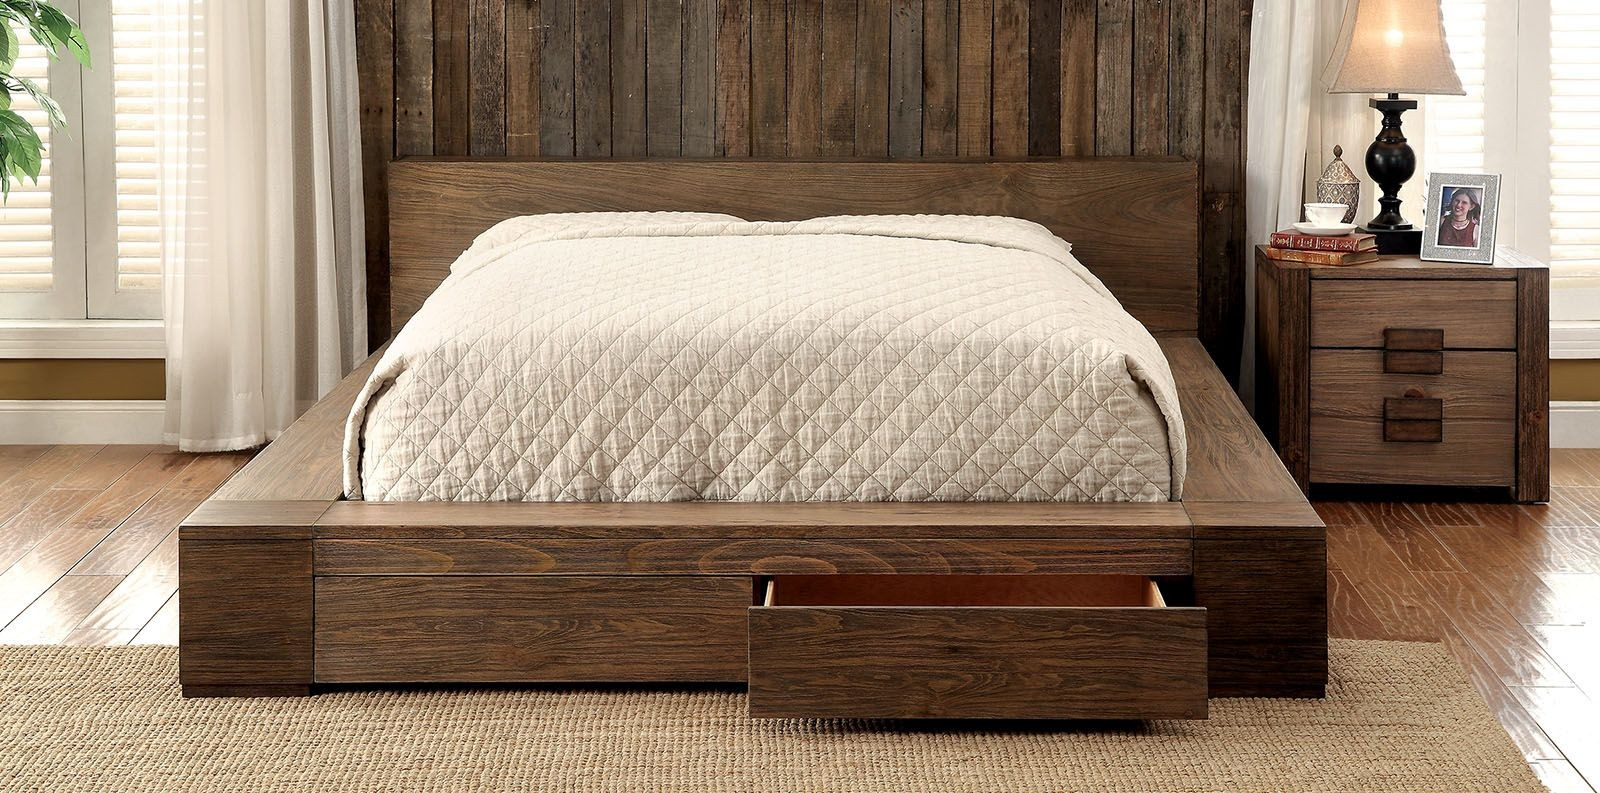 Modern Queen Bedroom Sets Janeiro Rustic Natural King Storage Bed Cm7629ek